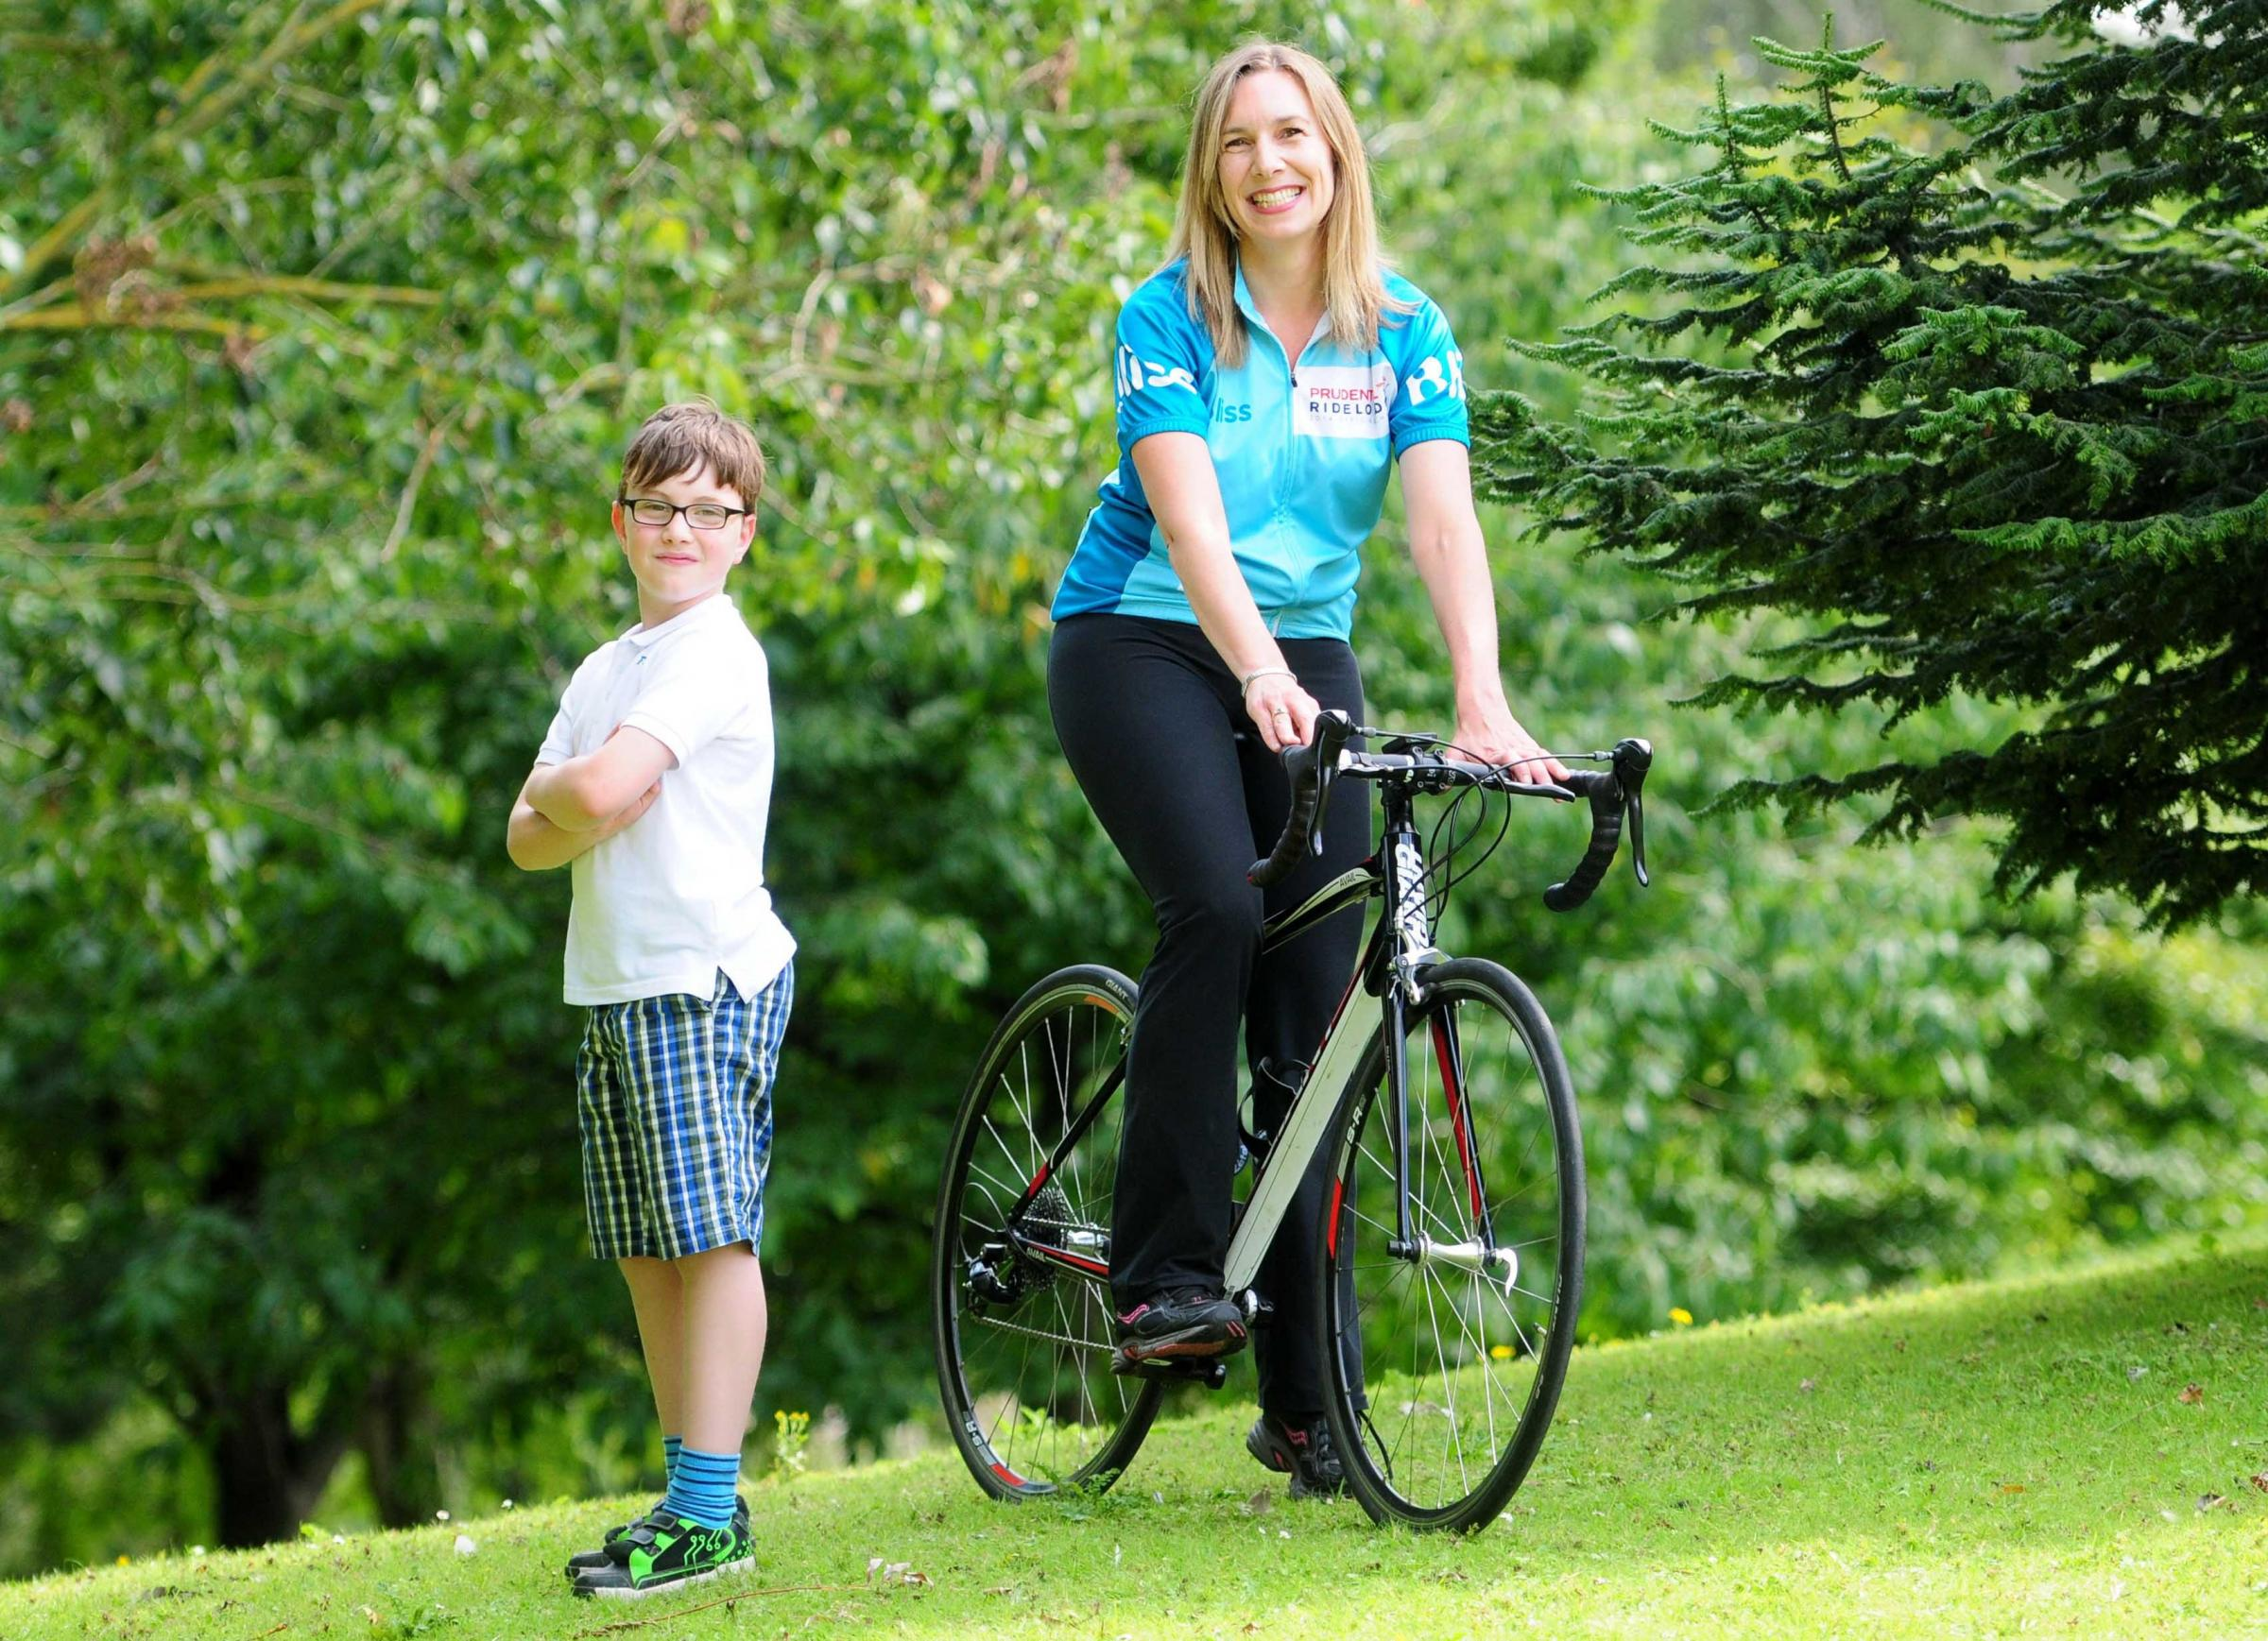 Mum of battling Joseph to cycle 100 miles in aid of special care baby charity